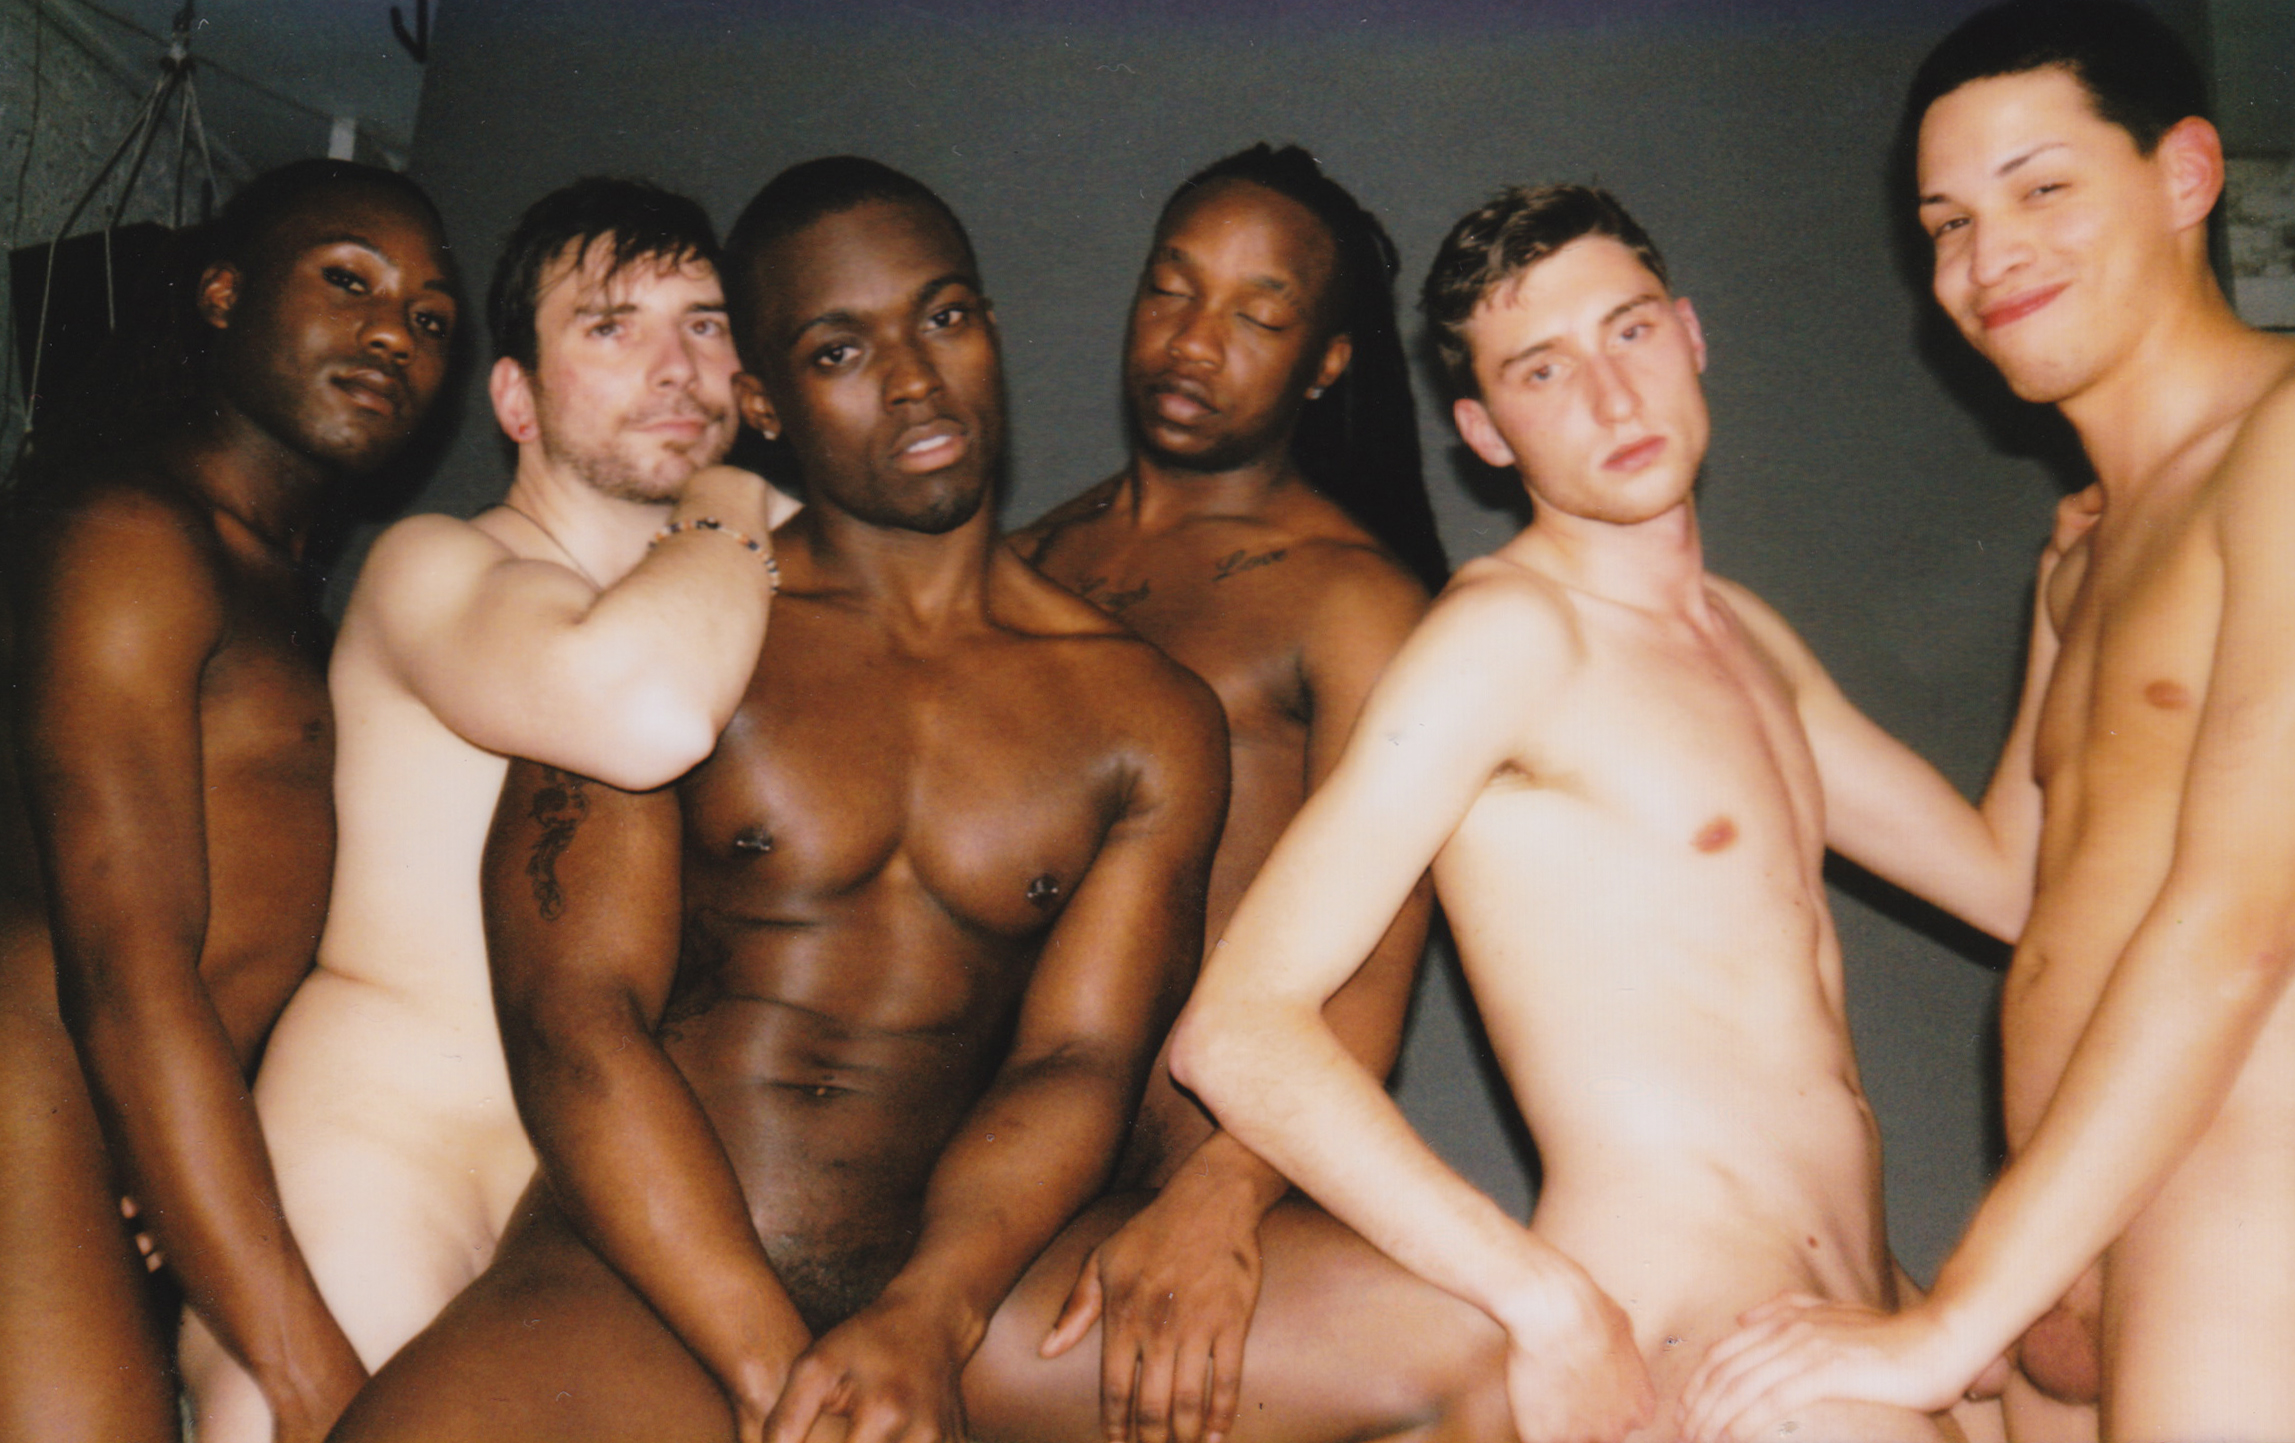 Hot foursome with eurobabes 3